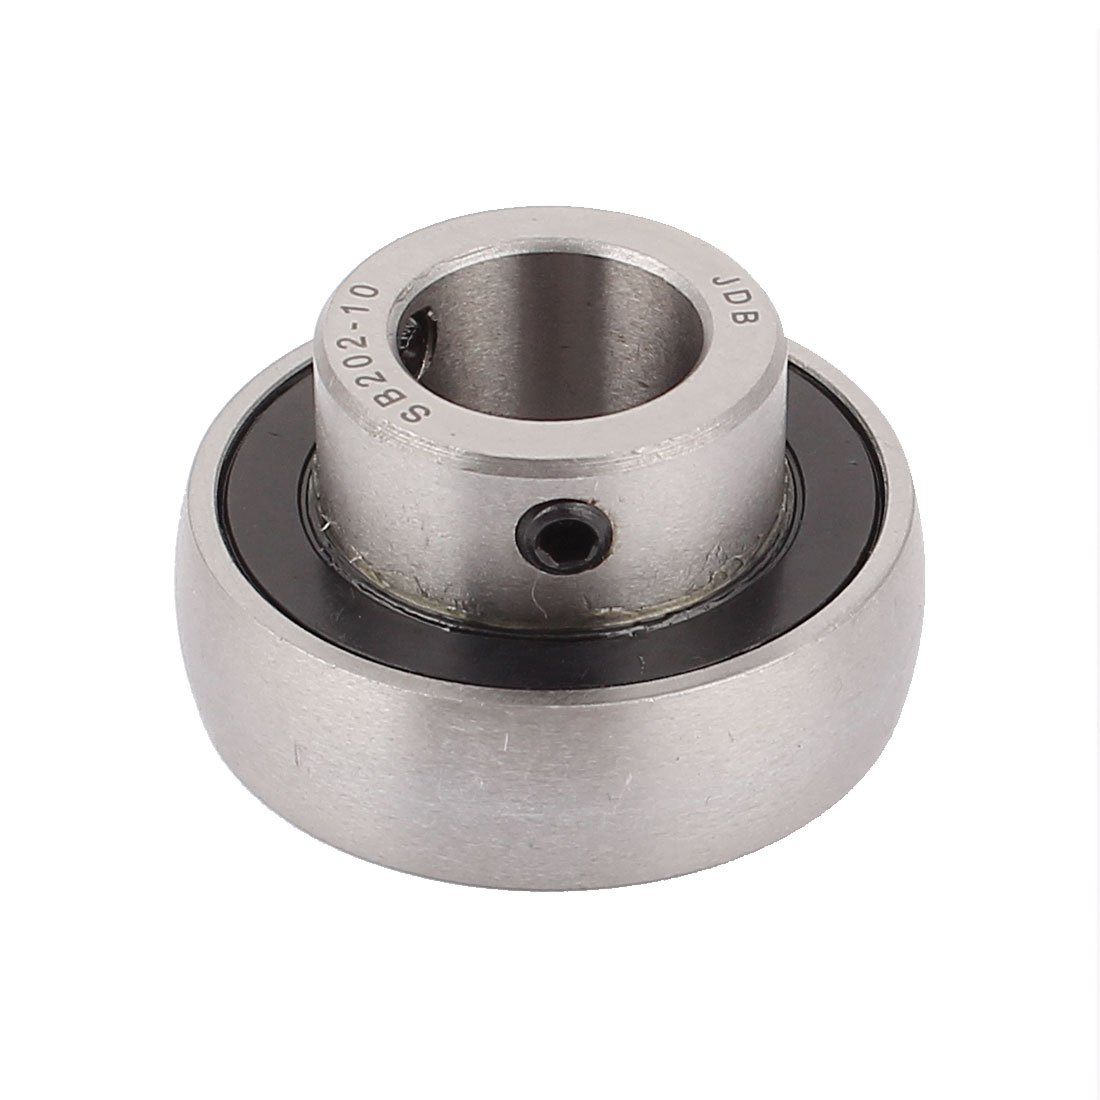 Uxcell a15060900ux1008 SB202-10 1.57' x 0.63' OD x Inner Dia Insert Mounted Spherical Bearing